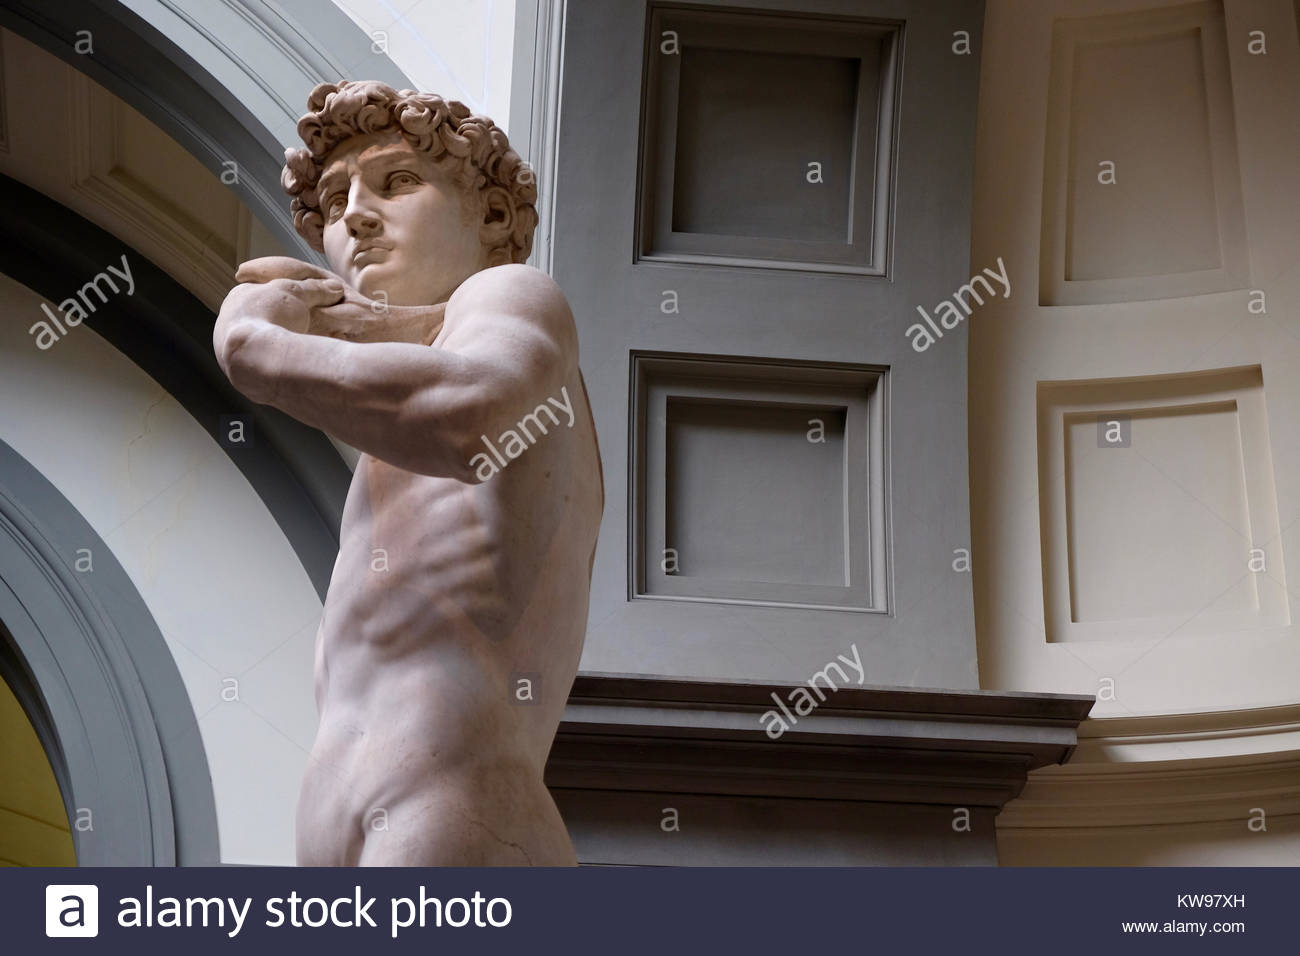 The David is one of the most classic pieces of art in the world and stands here with the look of planning. Stock Photo